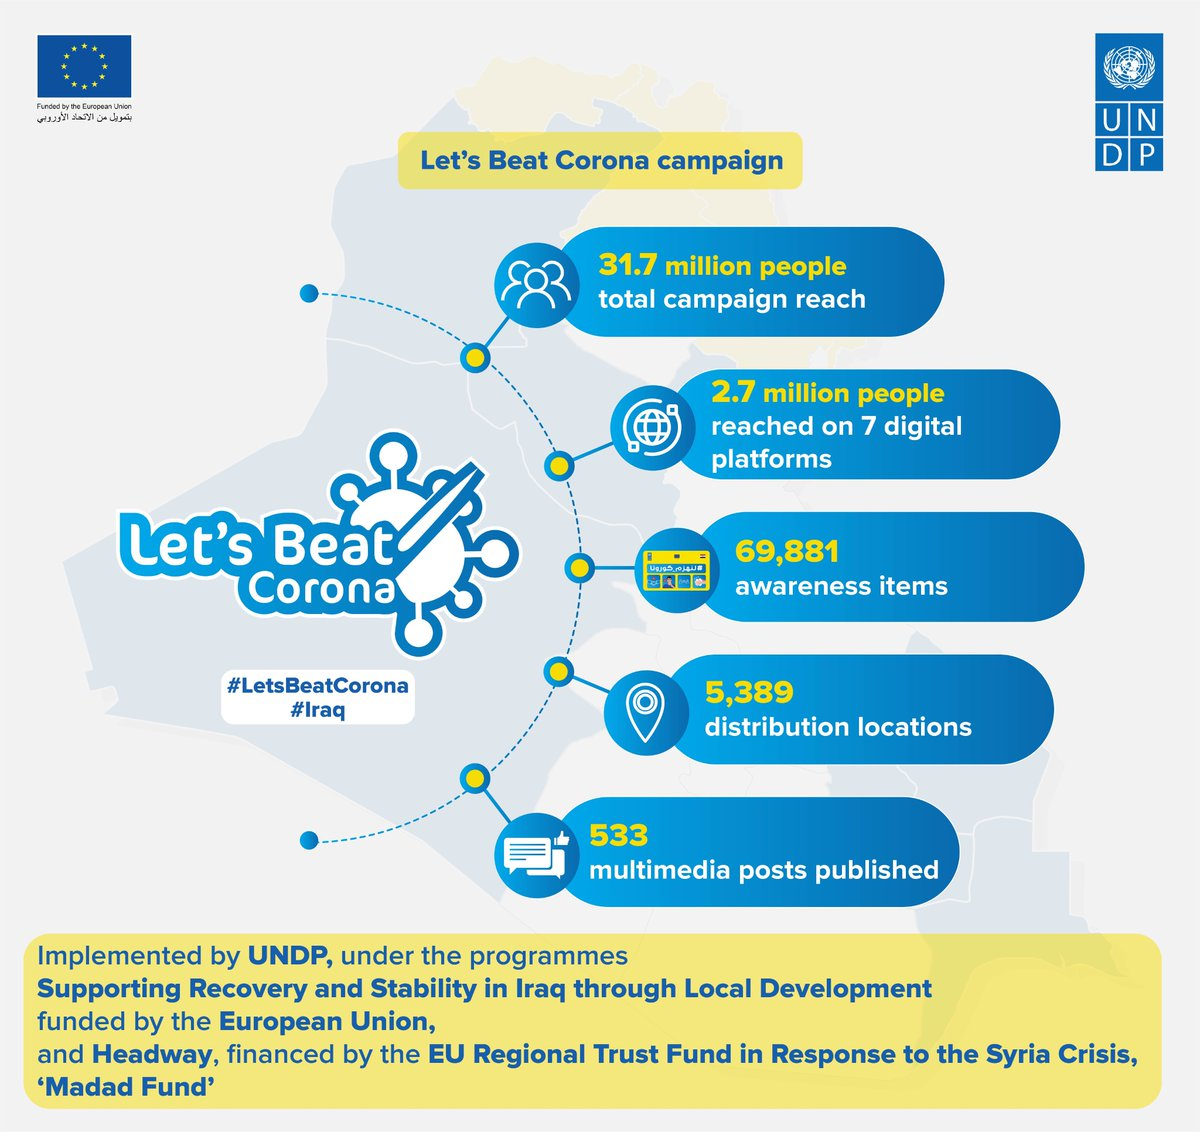 We can all contribute to raising #awareness to prevent the spread of #COVID19. See what we did and play your part! #LetsBeatCorona #EUMadad #UNDPEUPartnership #EUGlobalPlayer #DGNear #DGDevco #UNDP #KRGMoH #BuildForwardBetter #KRI #Iraq